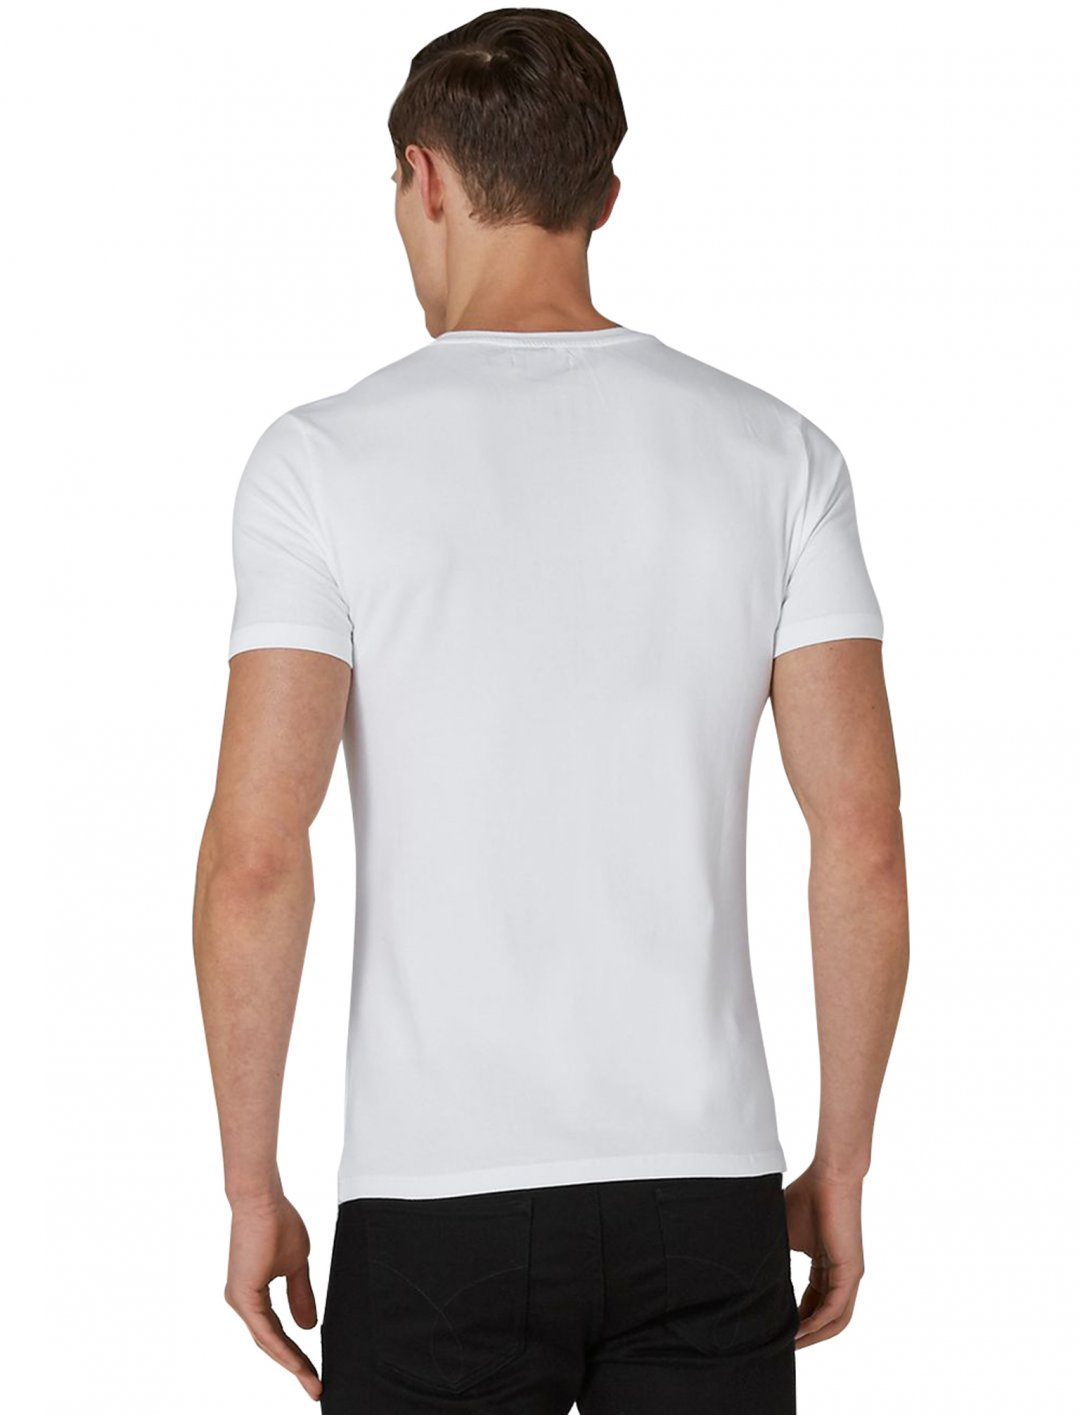 White Fit T-Shirt Clothing Topman